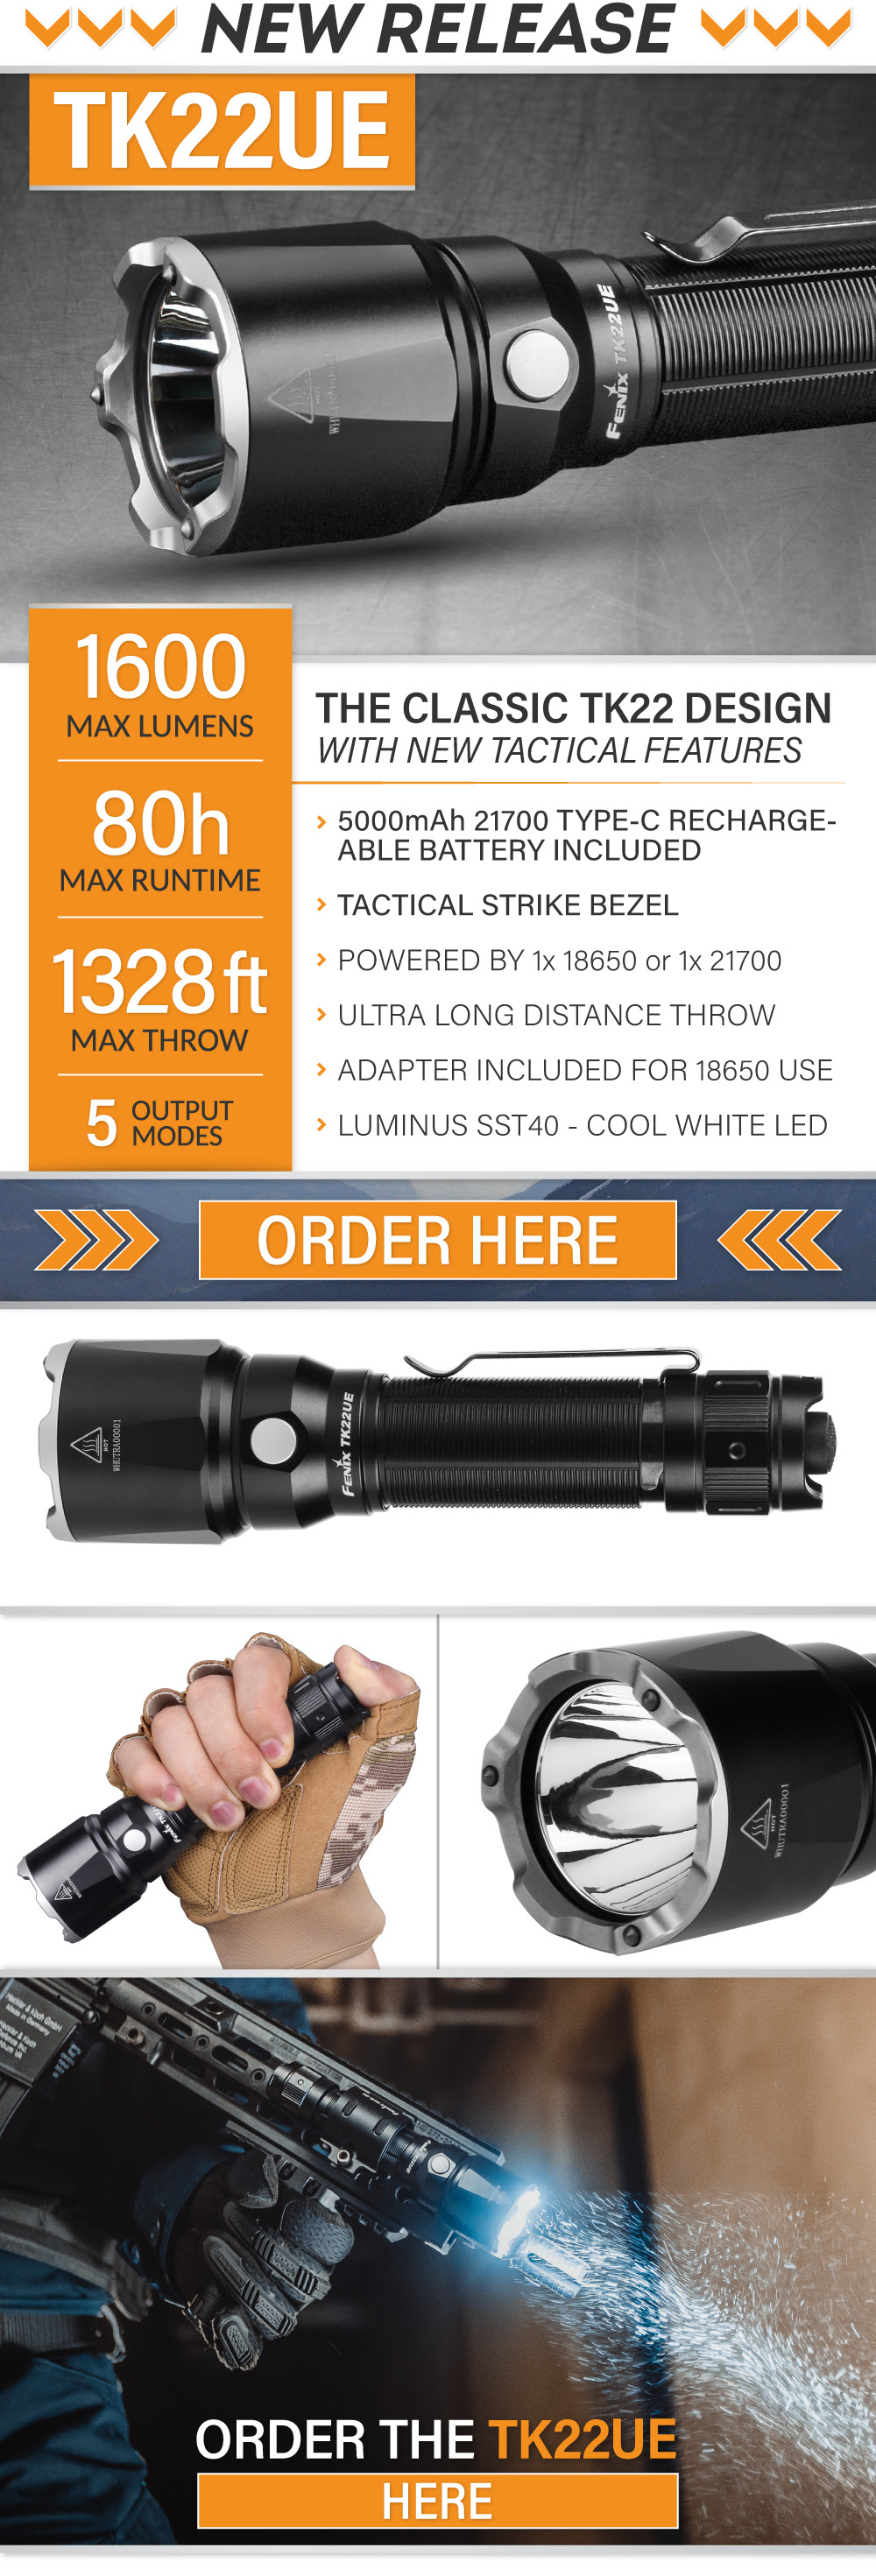 New Fenix Light - TK22UE